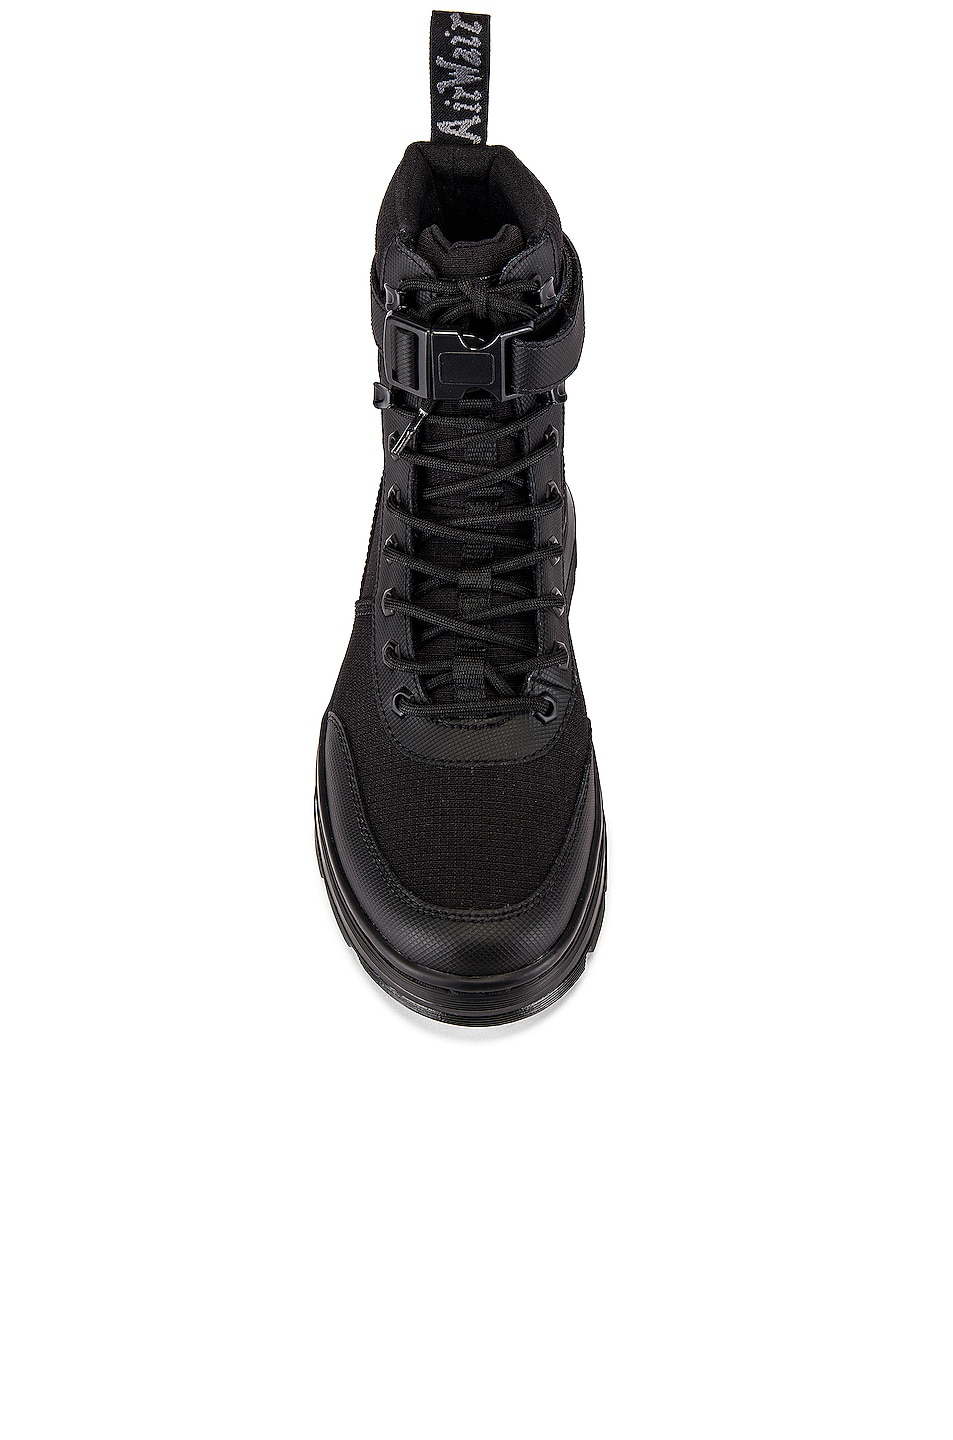 Image 4 of Dr. Martens Combs Tech Sneaker in Black